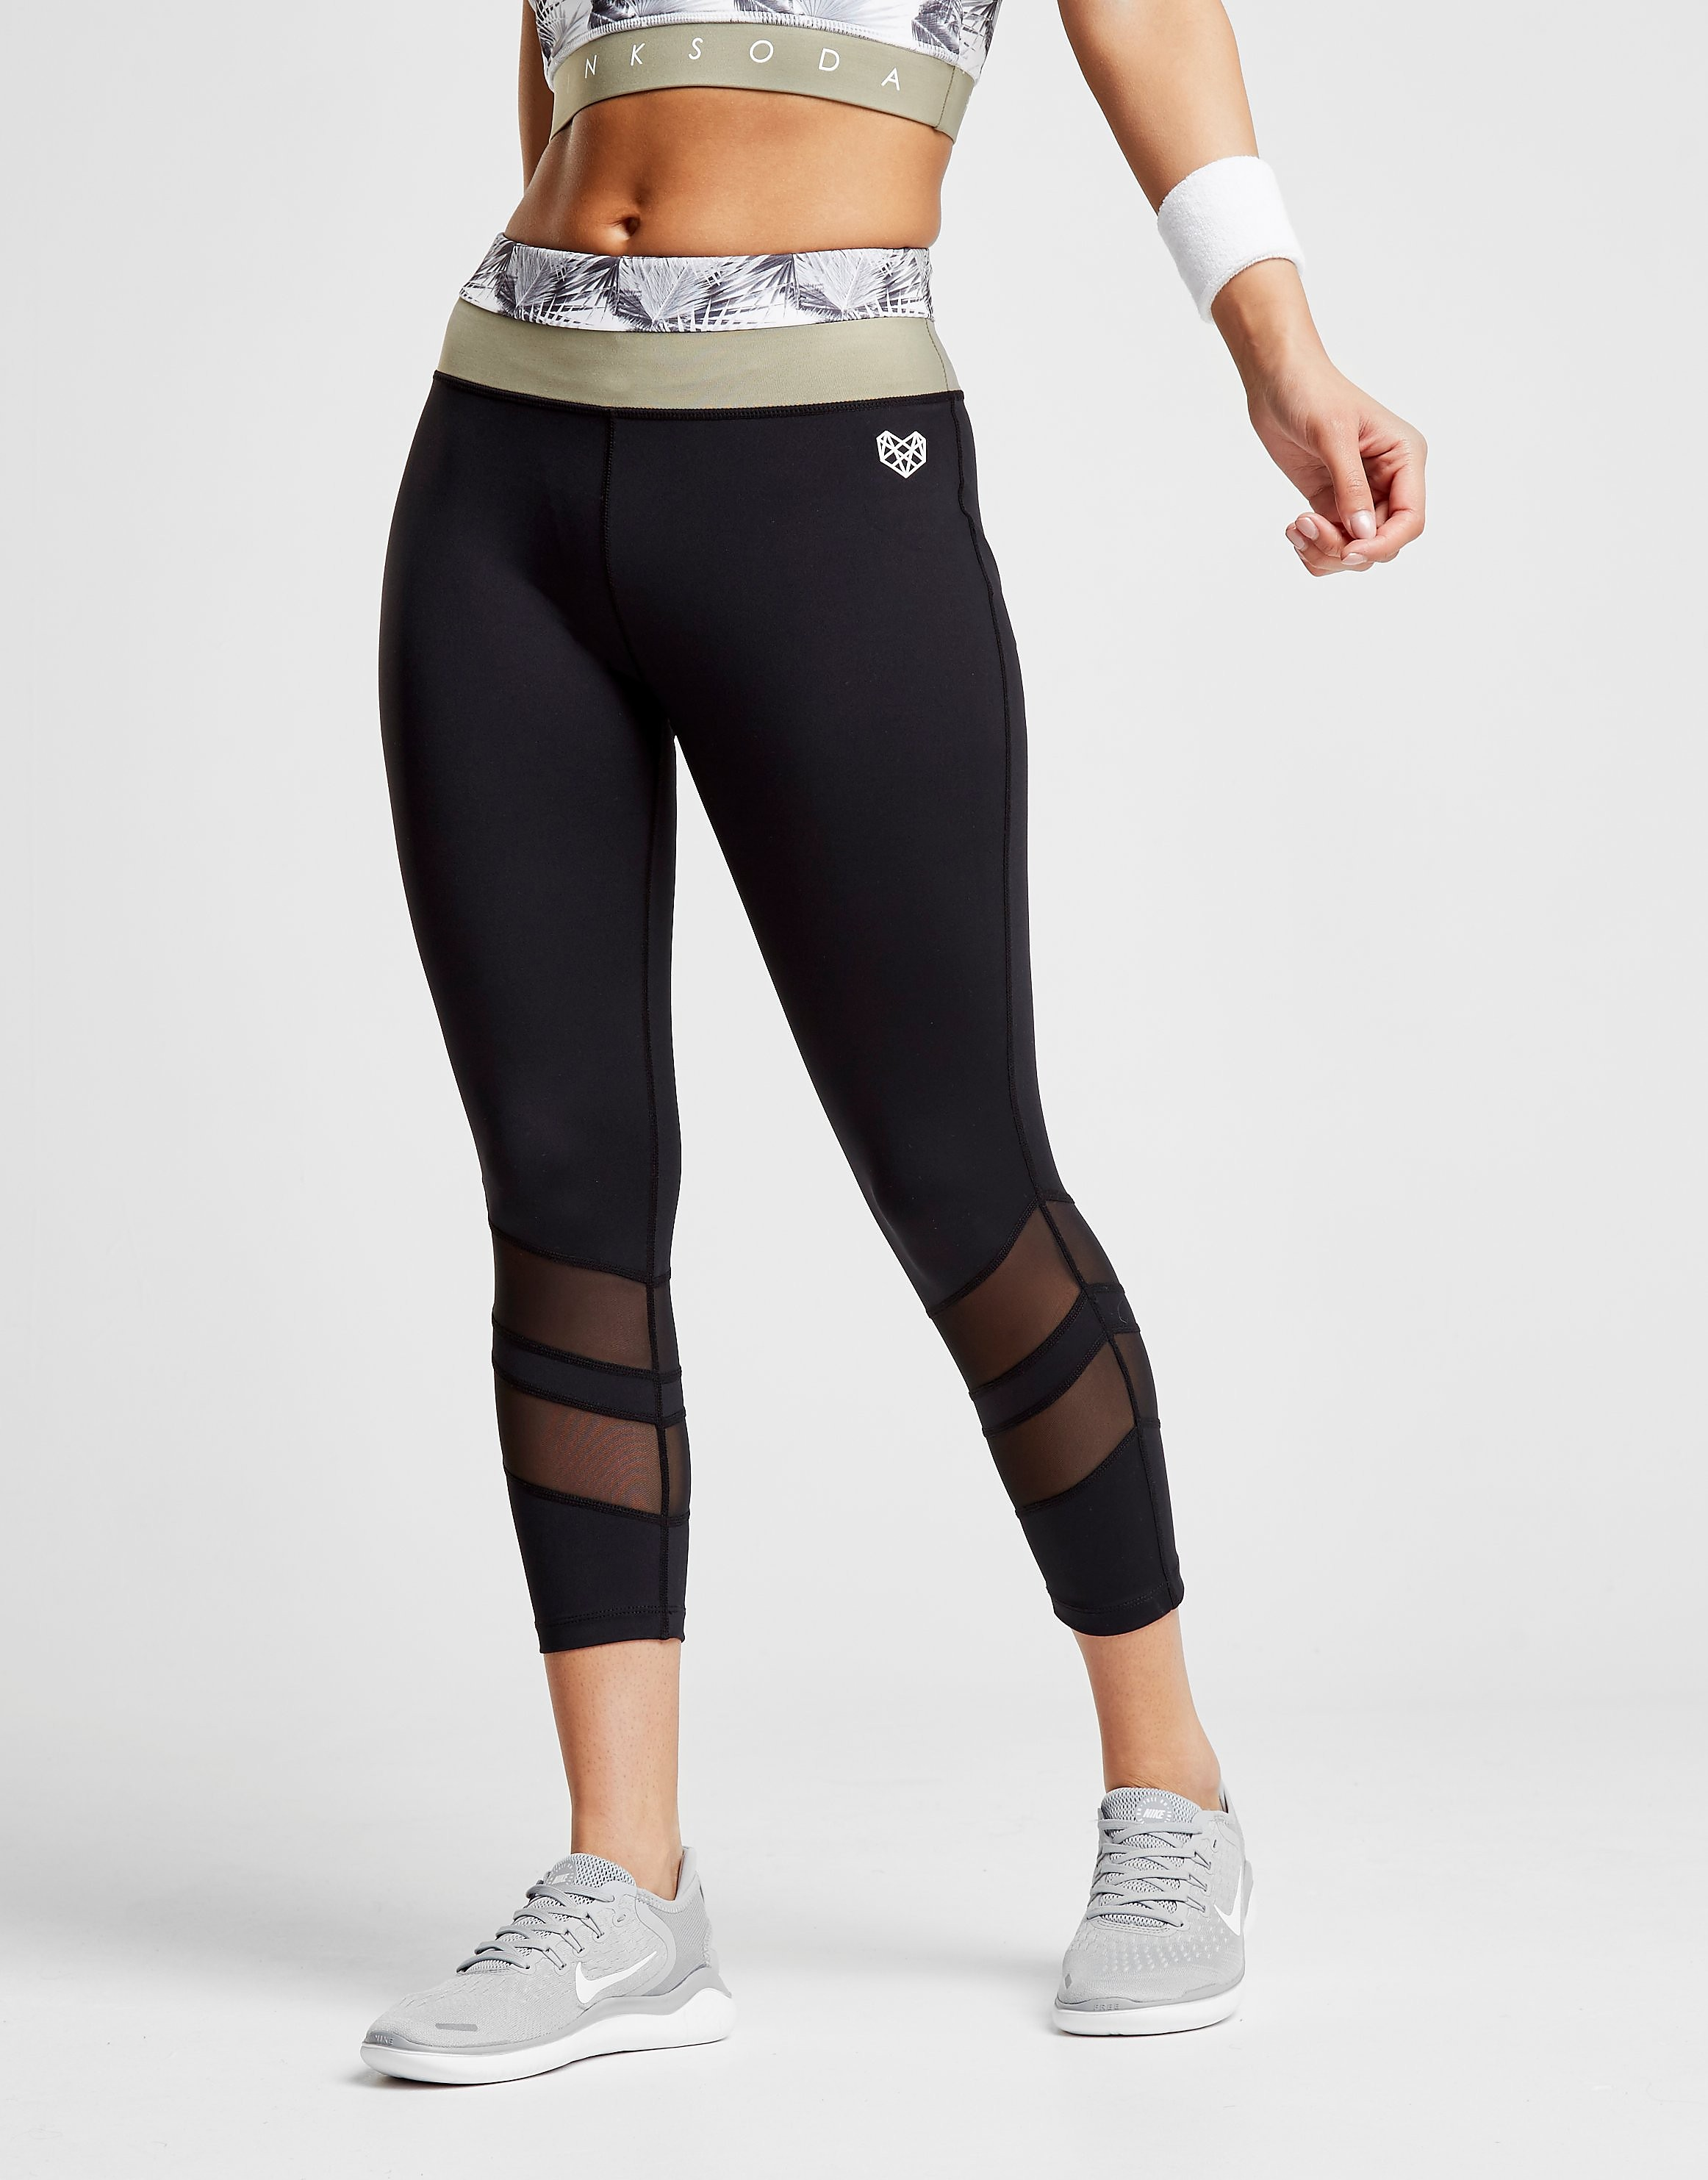 Pink Soda Sport Palm Panel Leggings Donna